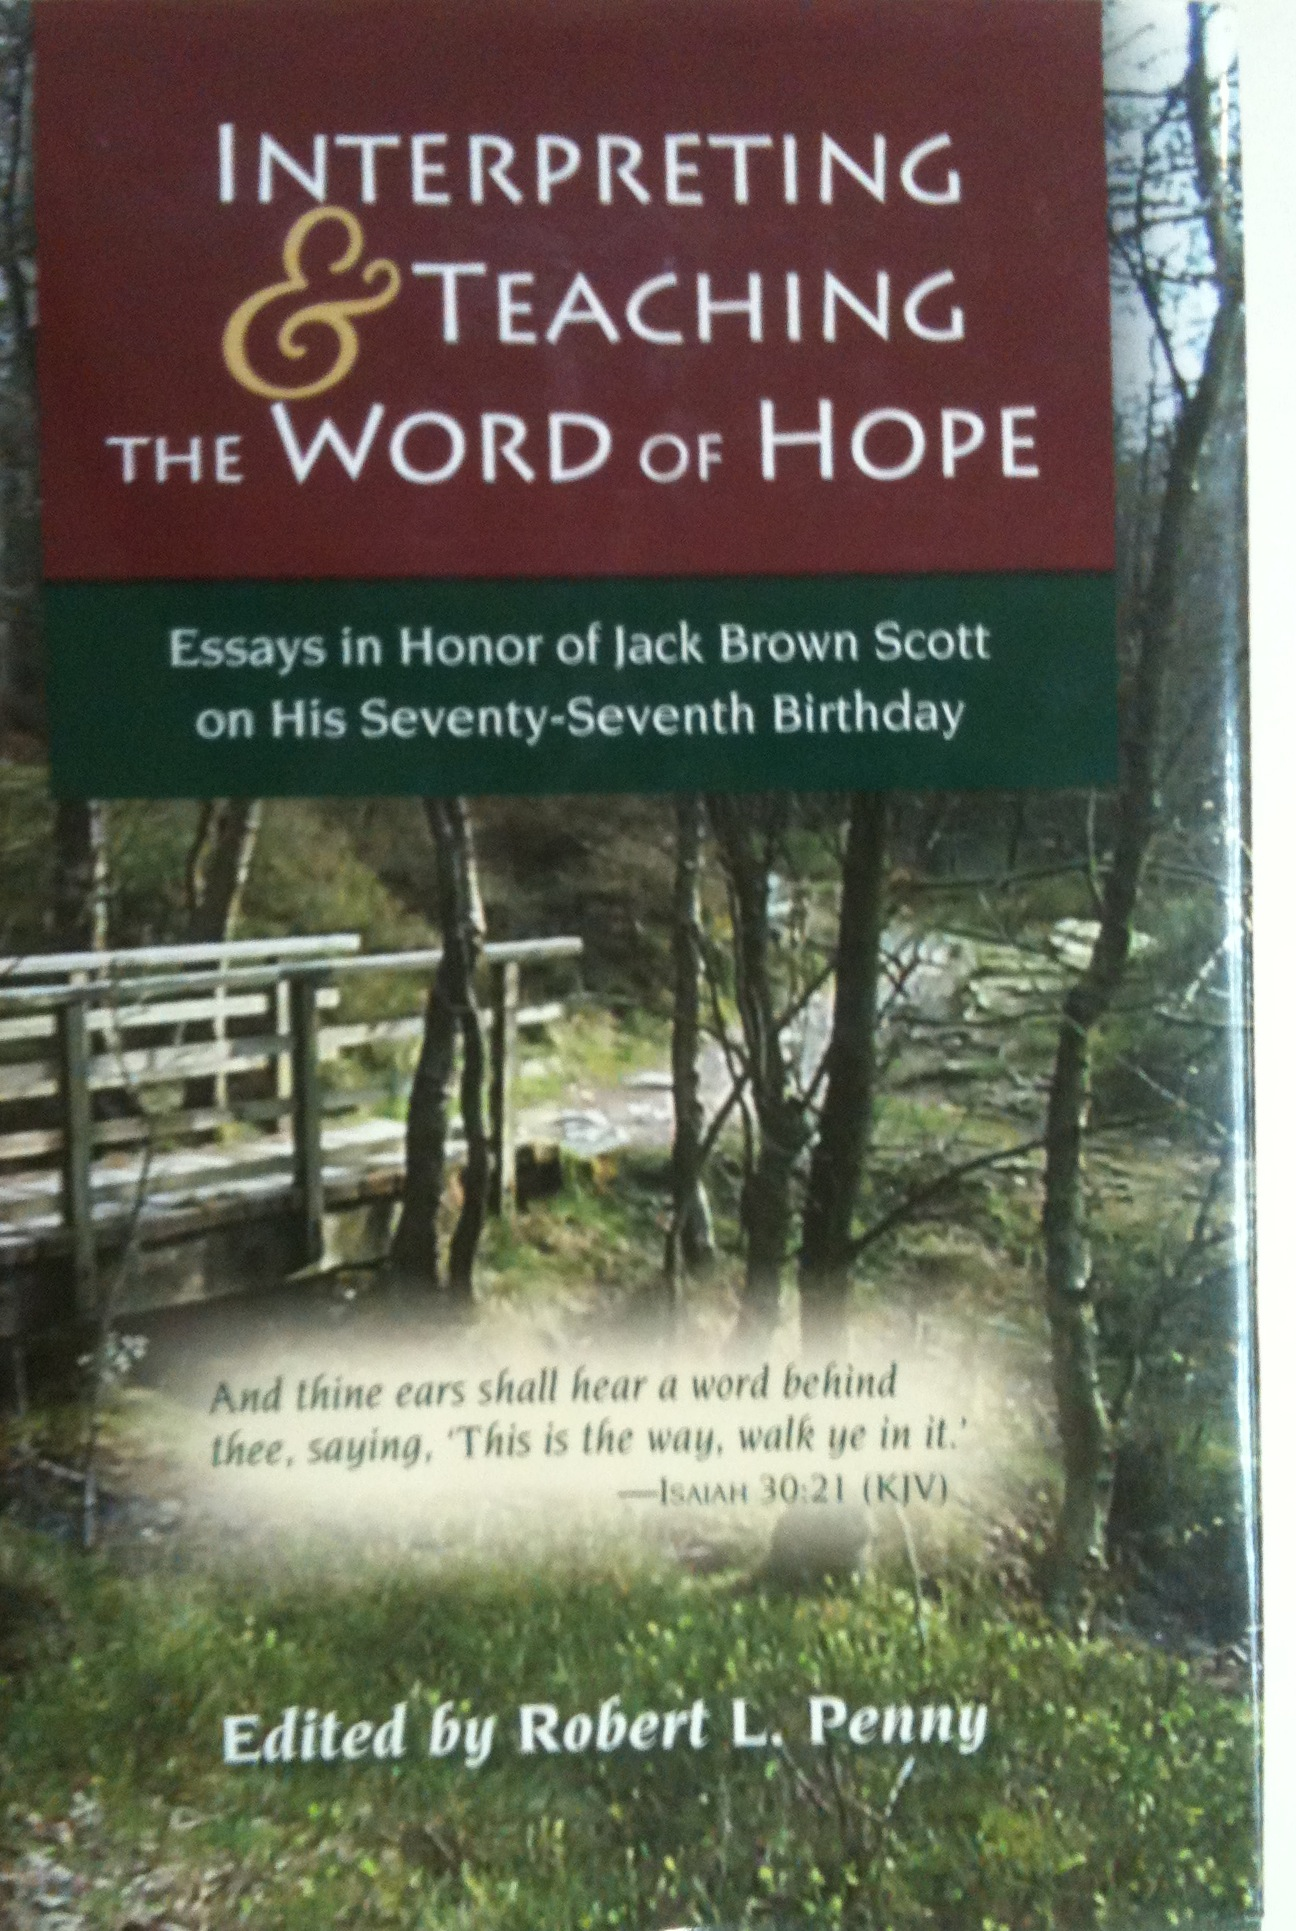 interpreting teaching the word of hope essays in honor of jack the life and ministry of dr jack brown scott is in some respects a simple tale north carolina lad becomes a preacher works for forty years